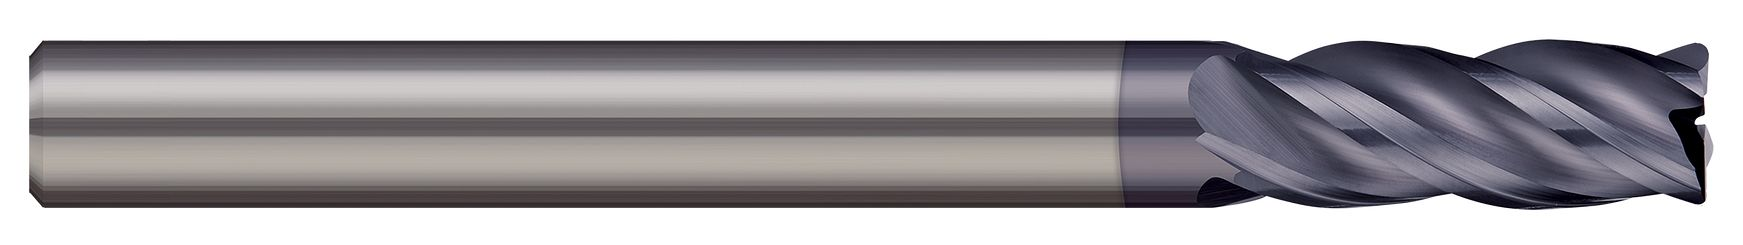 End Mills for Steels & High Temperature Alloys - Corner Radius - 4 Flute - Variable Helix